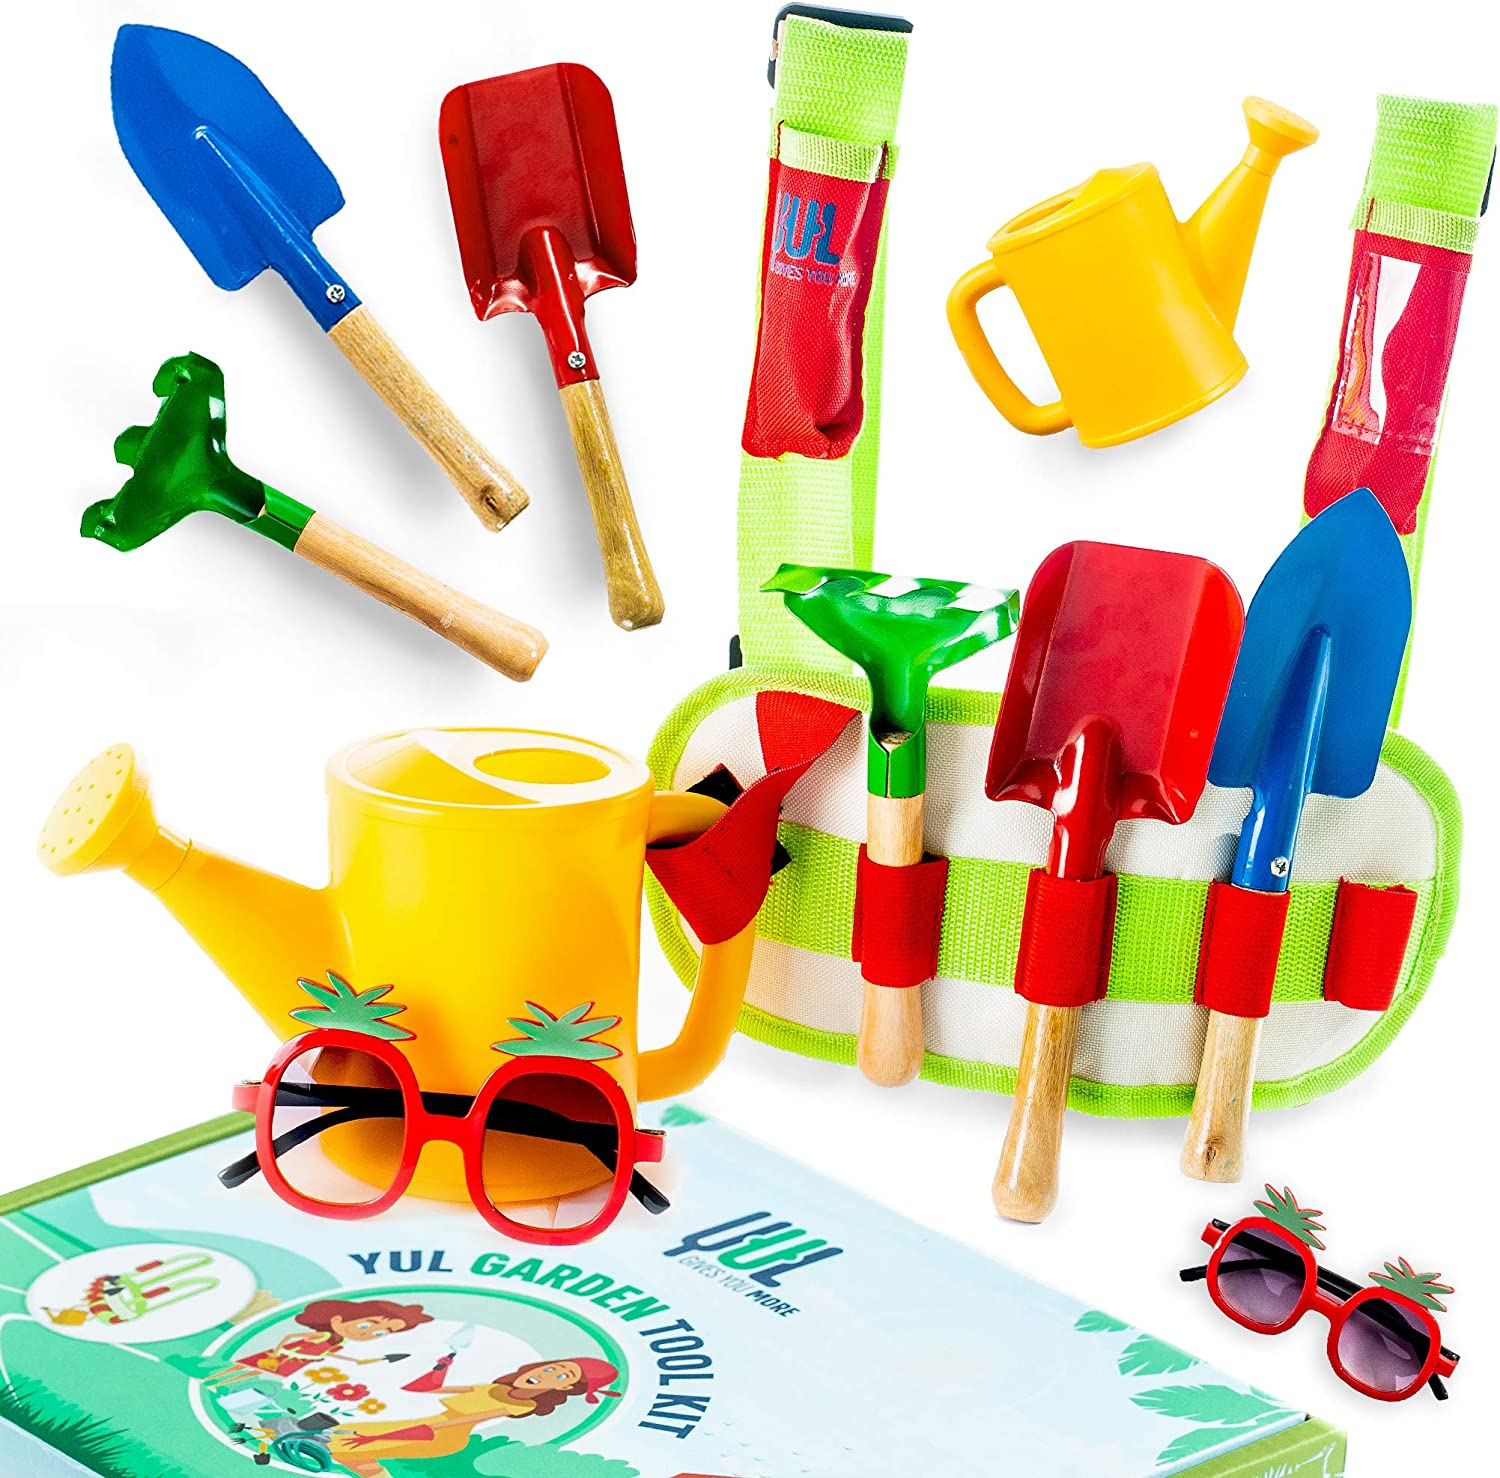 YUL Kid's Gardening Tool Set: Fun Child's Vest Carry Belt with Rake, Hoe, Shovel, Sunglasses, Watering Can, ID Pocket, Adjustable Straps, Velcro, Buckle, Ages 3 to 10